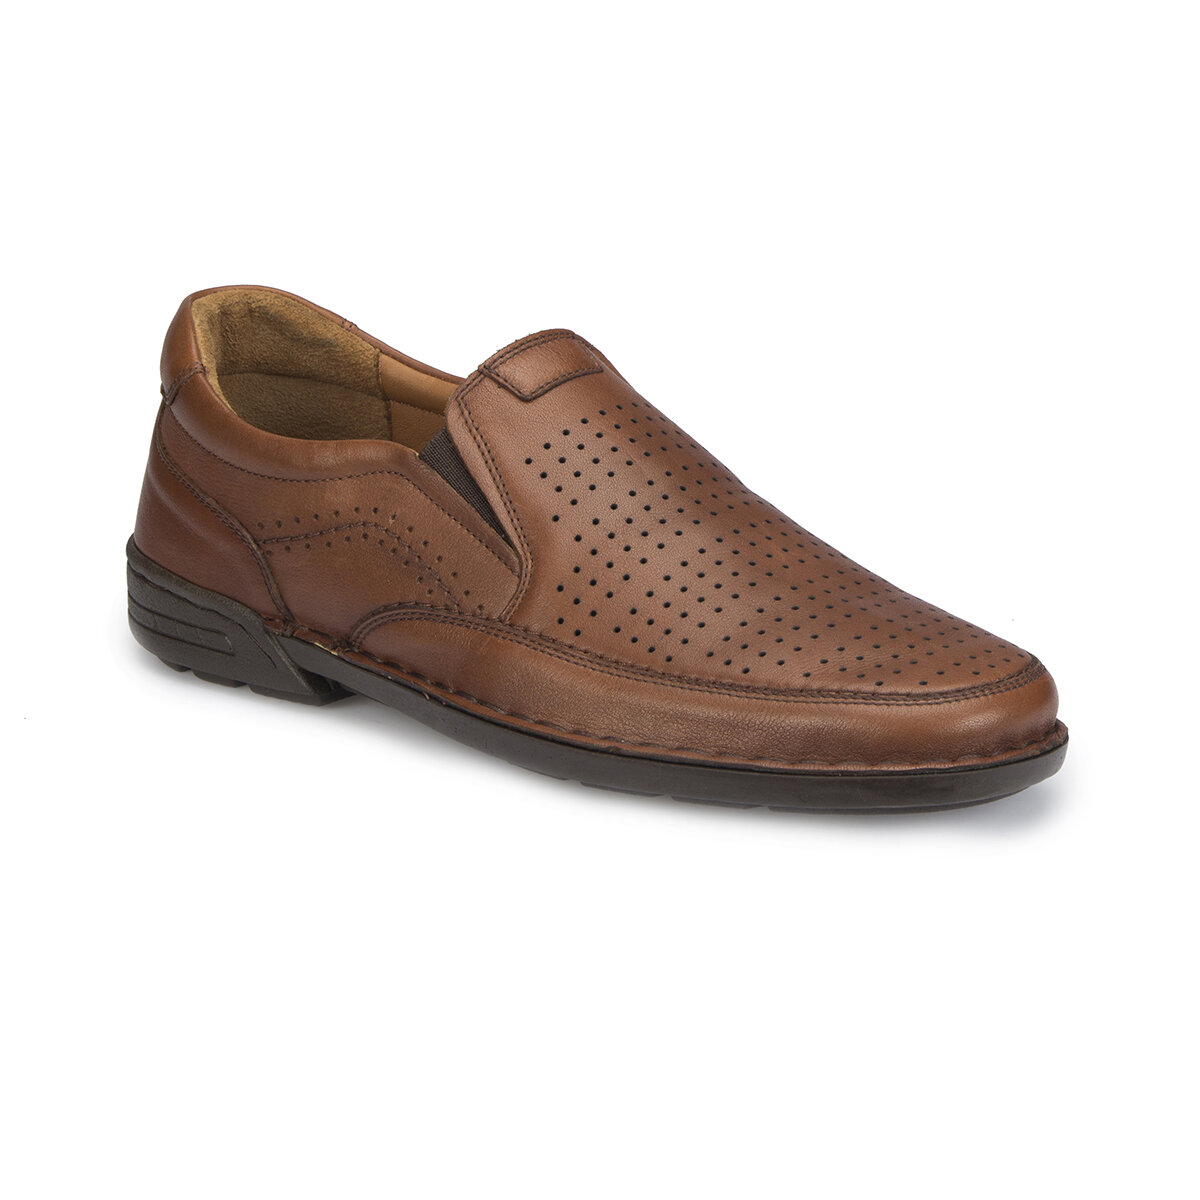 FLO 81.110451.M Tan Men 'S Classic Shoes Polaris 5 Point